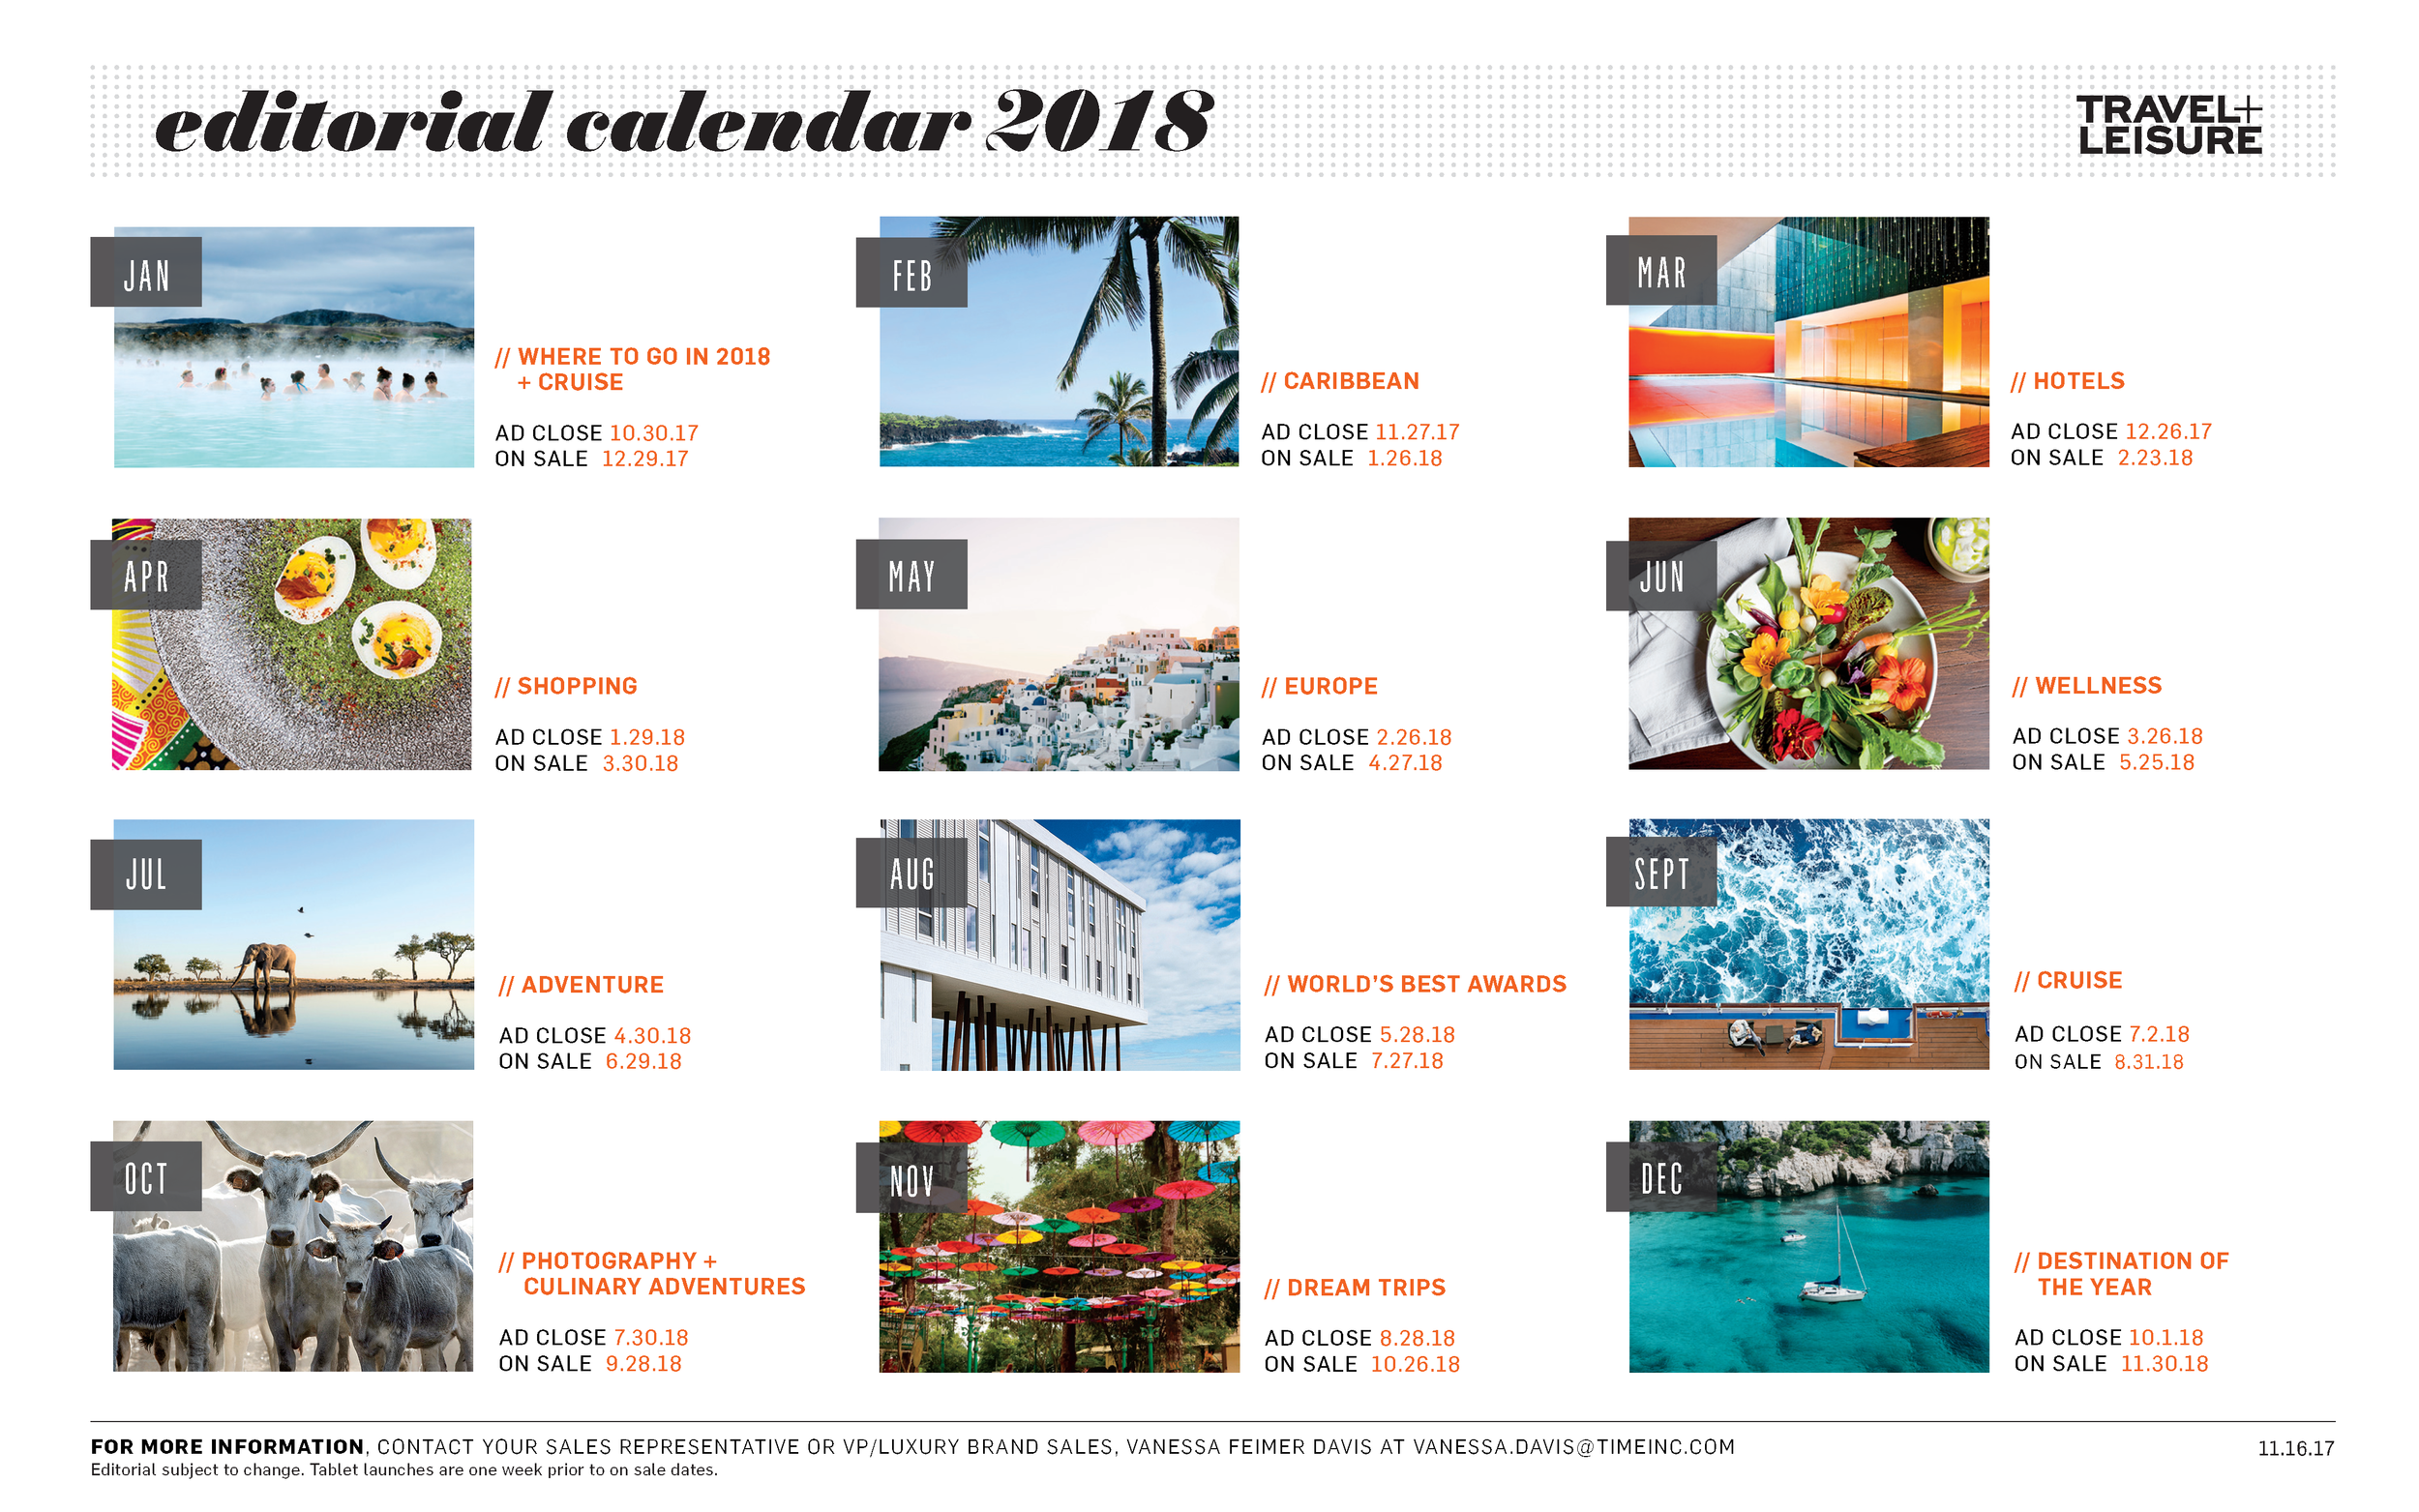 TravelLeisure2018.png